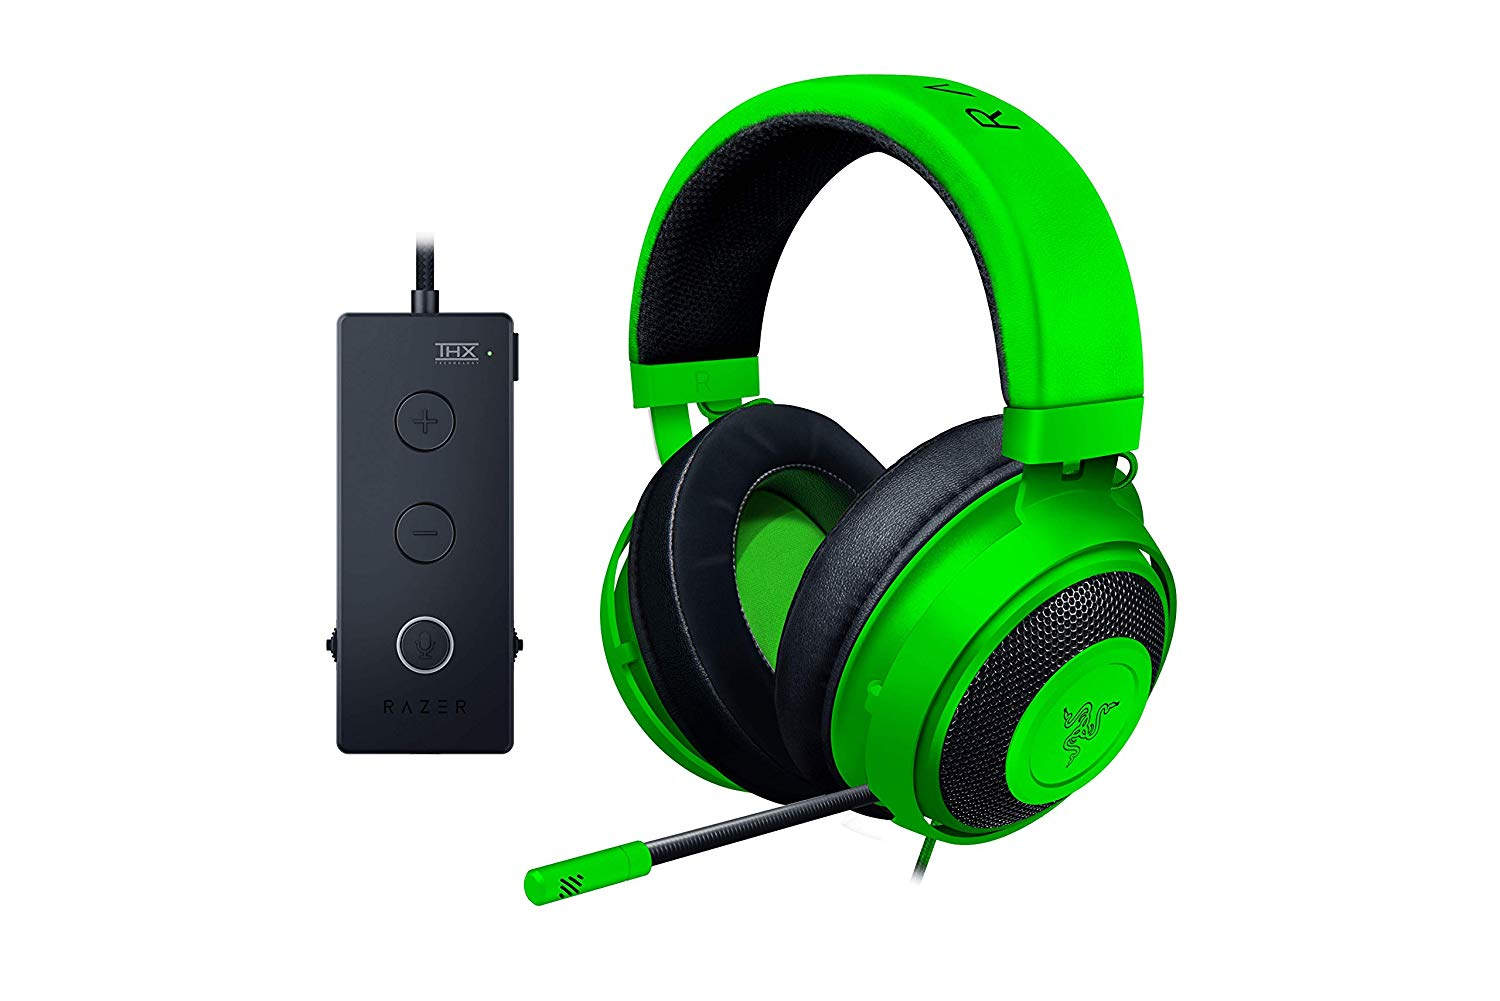 Save over 30% on a Razer esports gaming headset with this Kracken deal